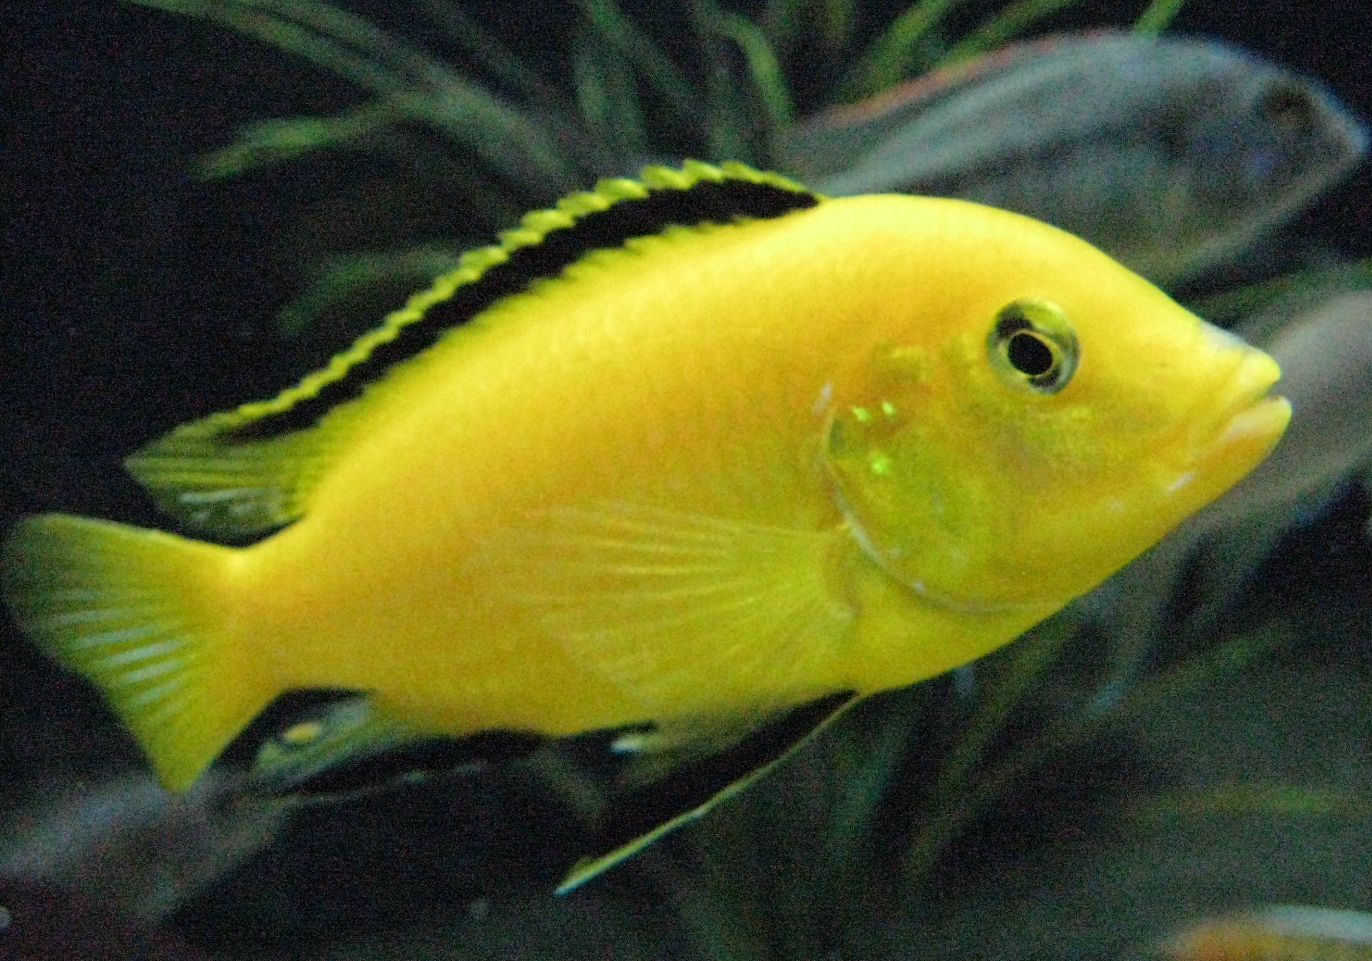 The Basic Things To Know While Keeping Cichlids